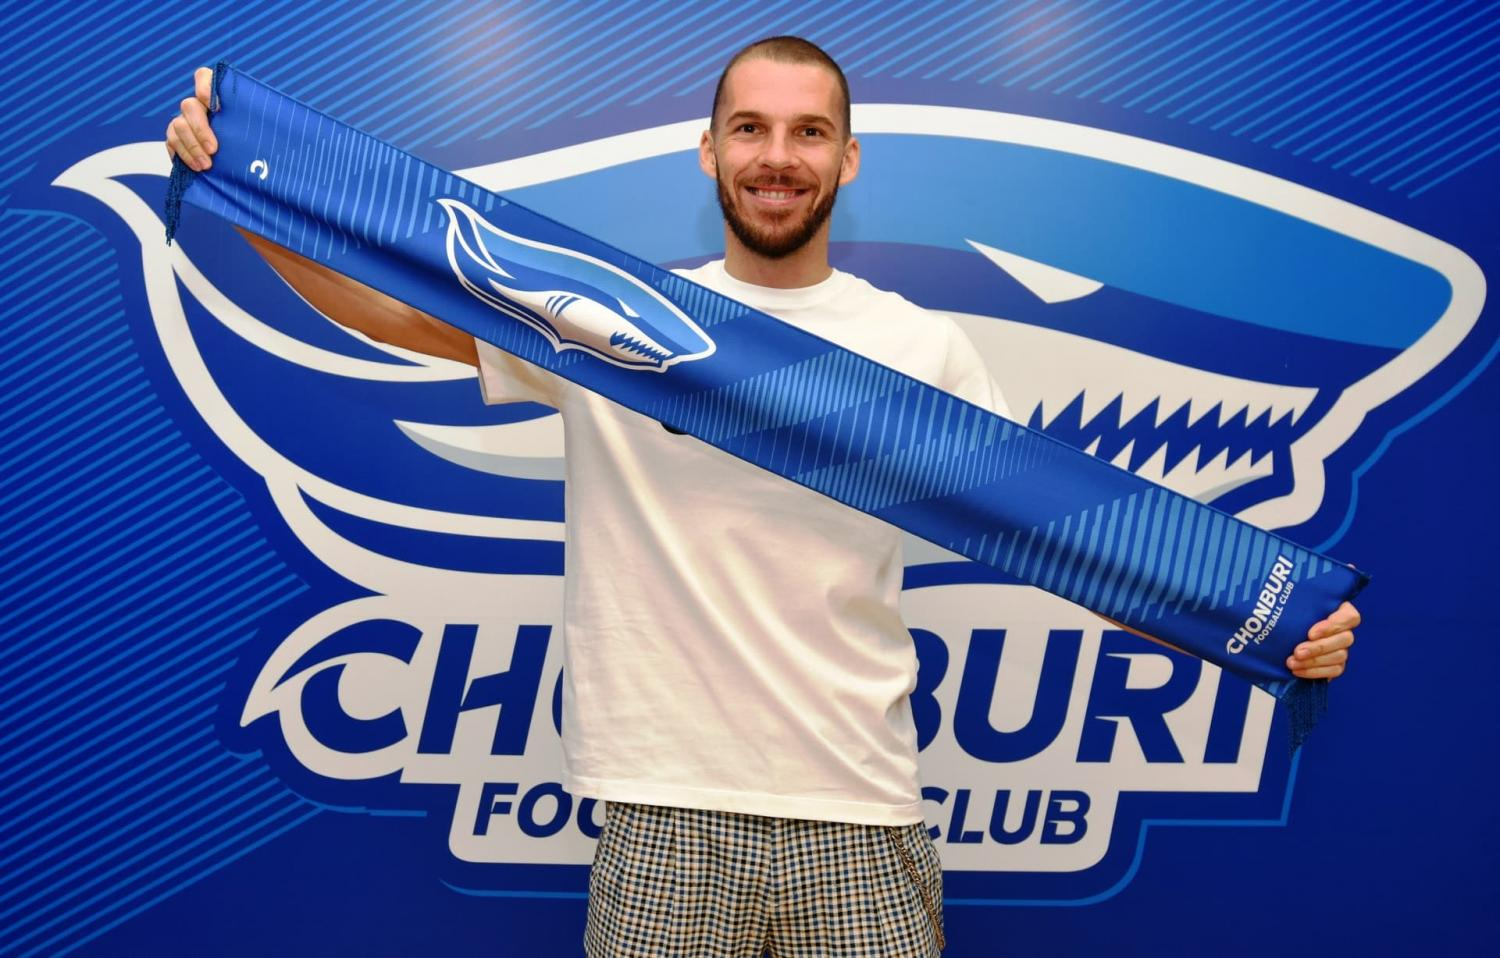 Montenegro's Dragan Boskovic is unveiled as Chonburi player.